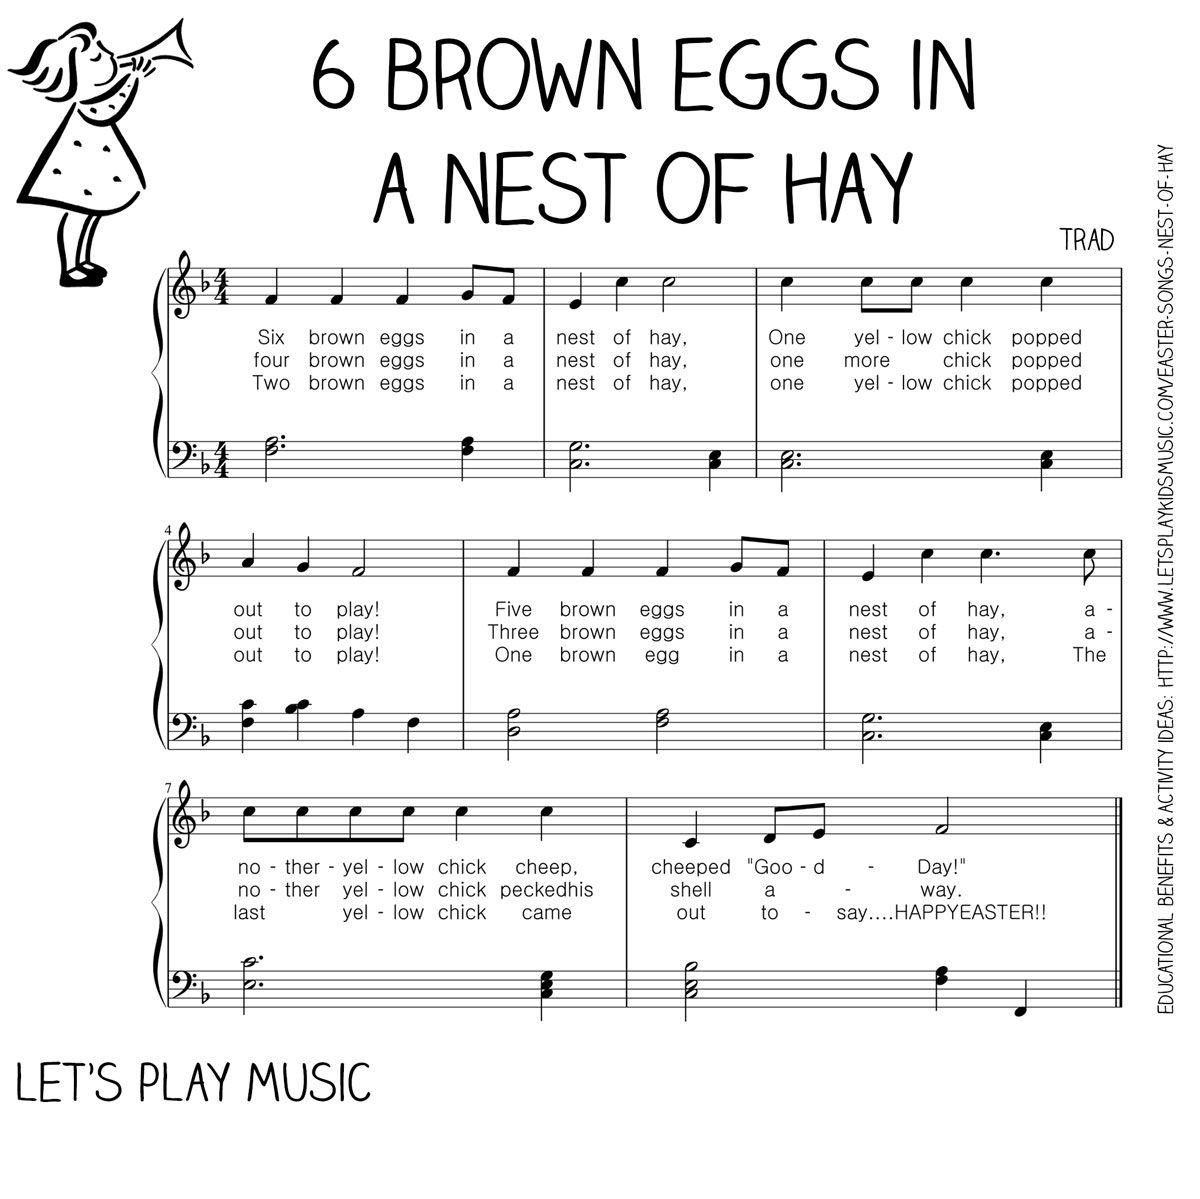 Spring Song : 6 Brown Eggs in a Nest of Hay | Farm theme, Music ...